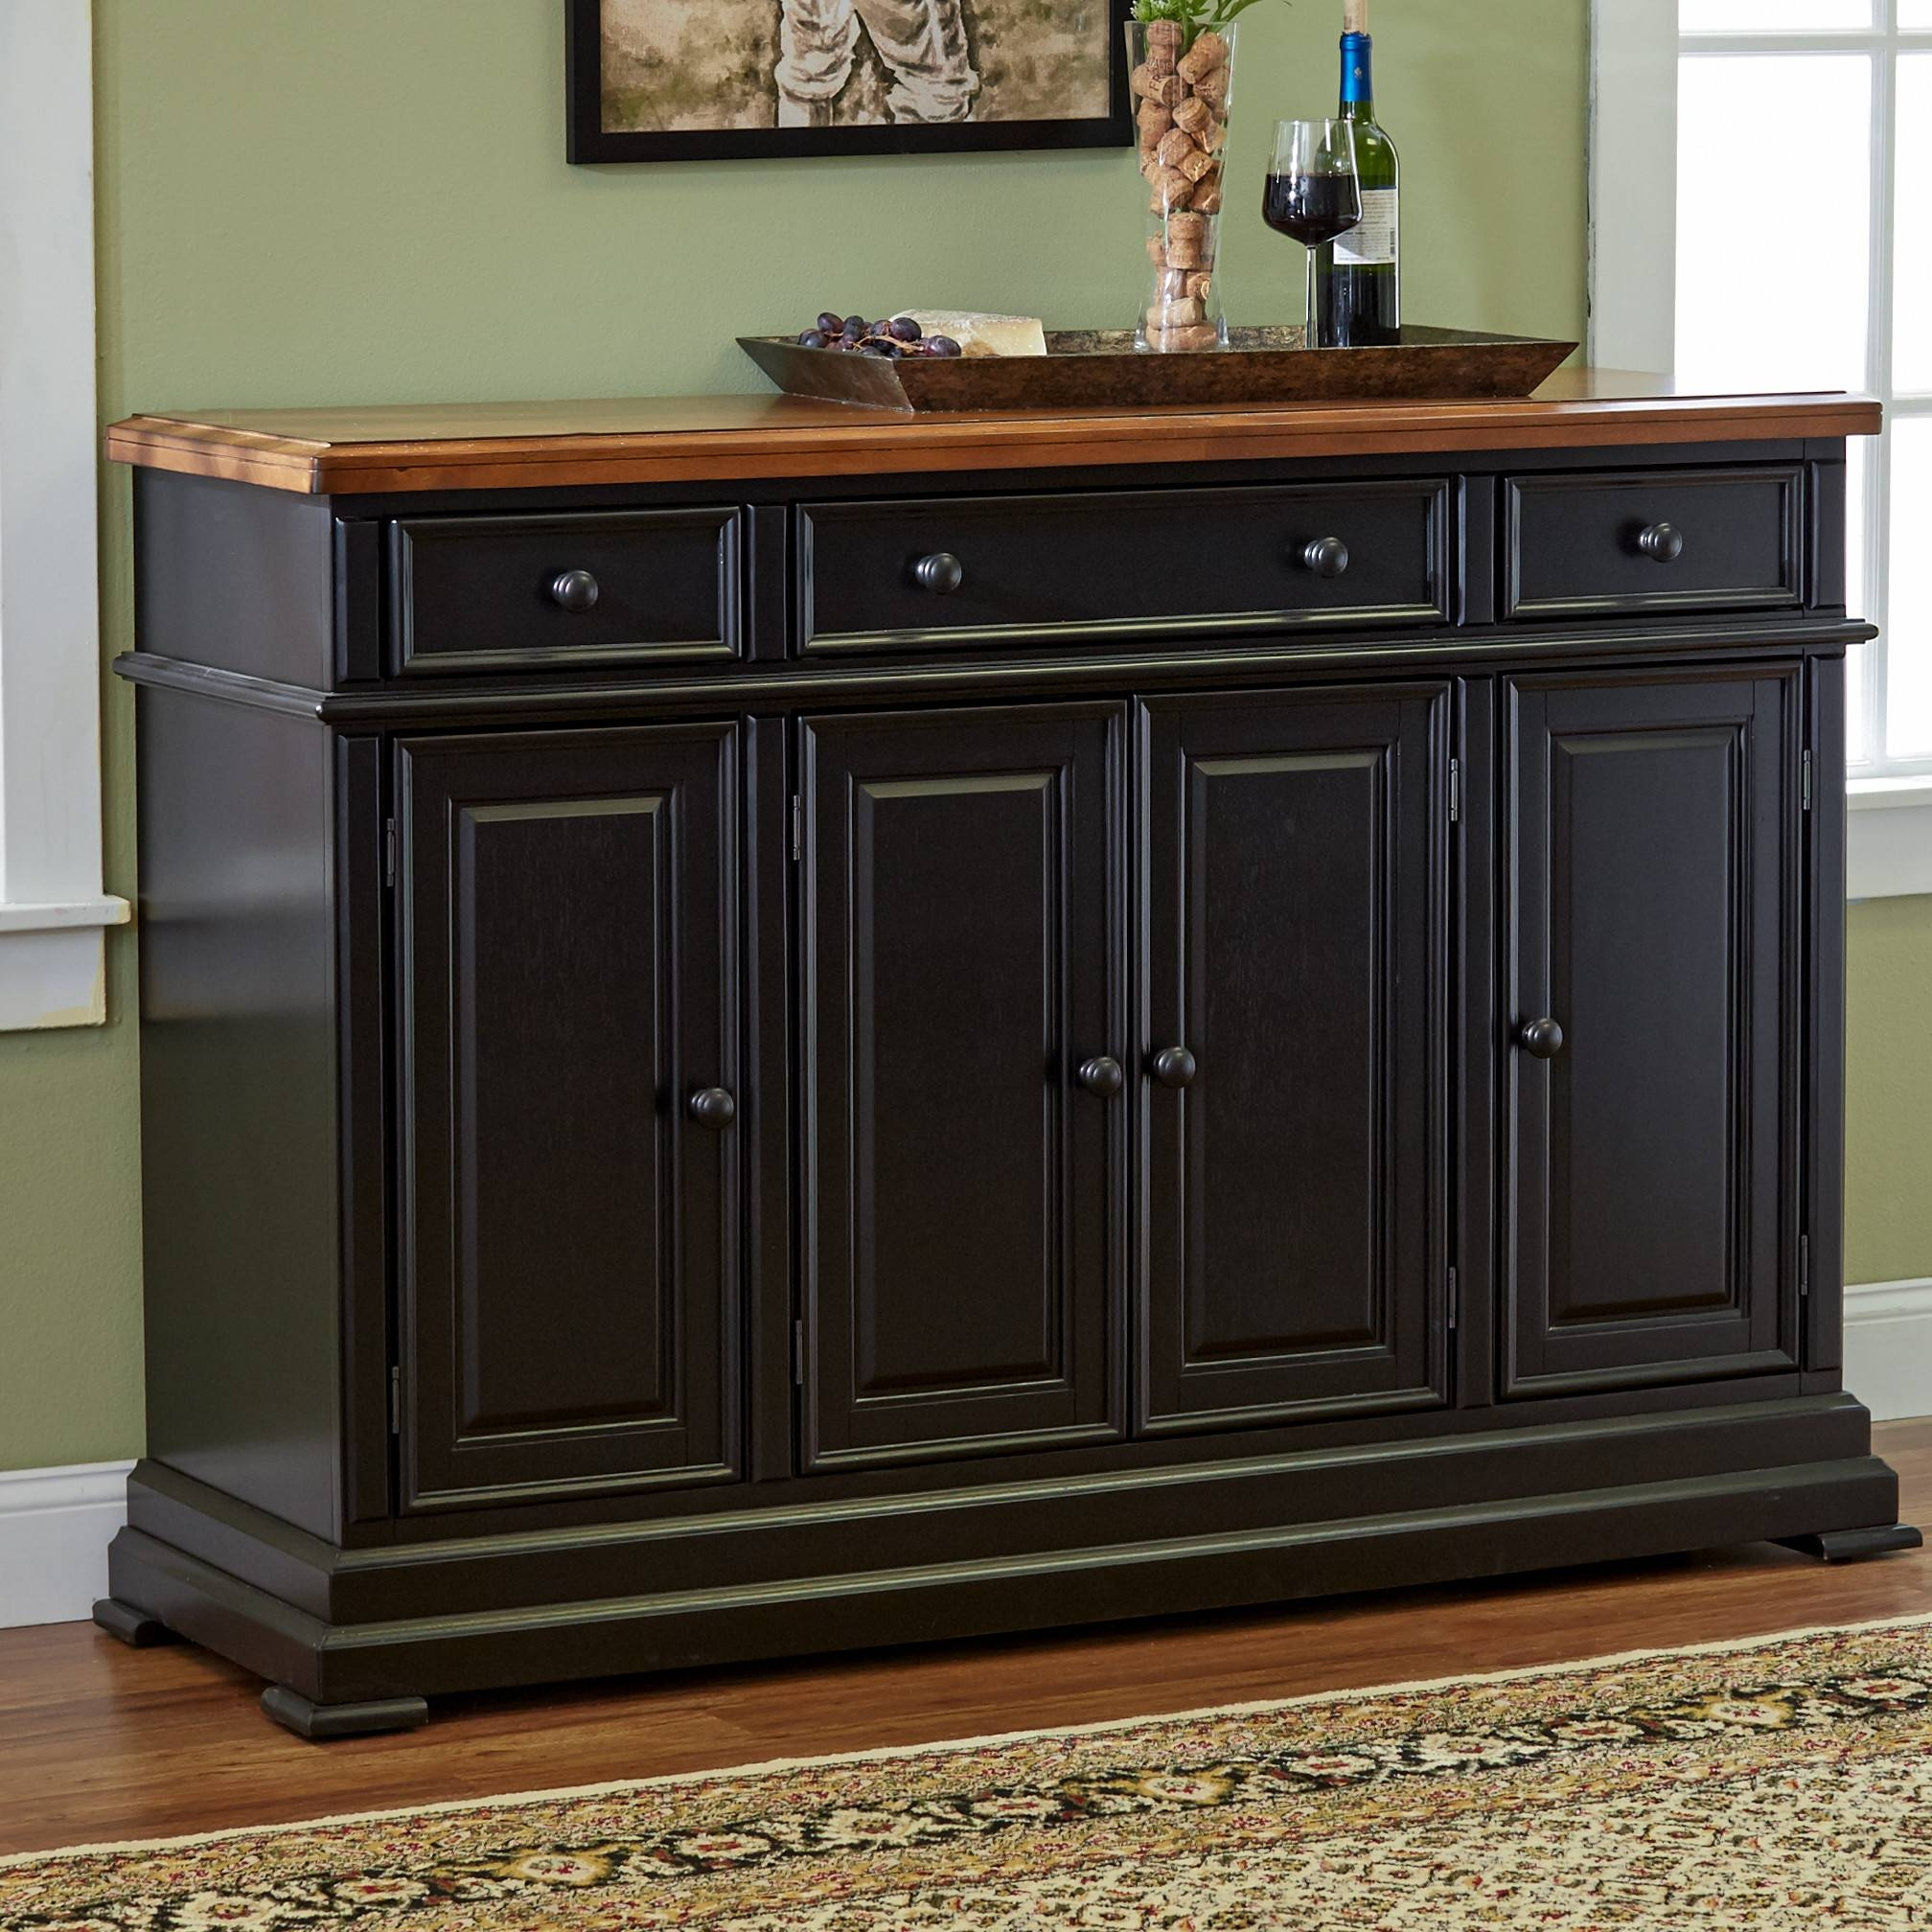 Dining Room Buffet Cabinet Sideboards Buffets Storage Servers 17 With Most Popular Dining Buffets And Sideboards (#9 of 15)